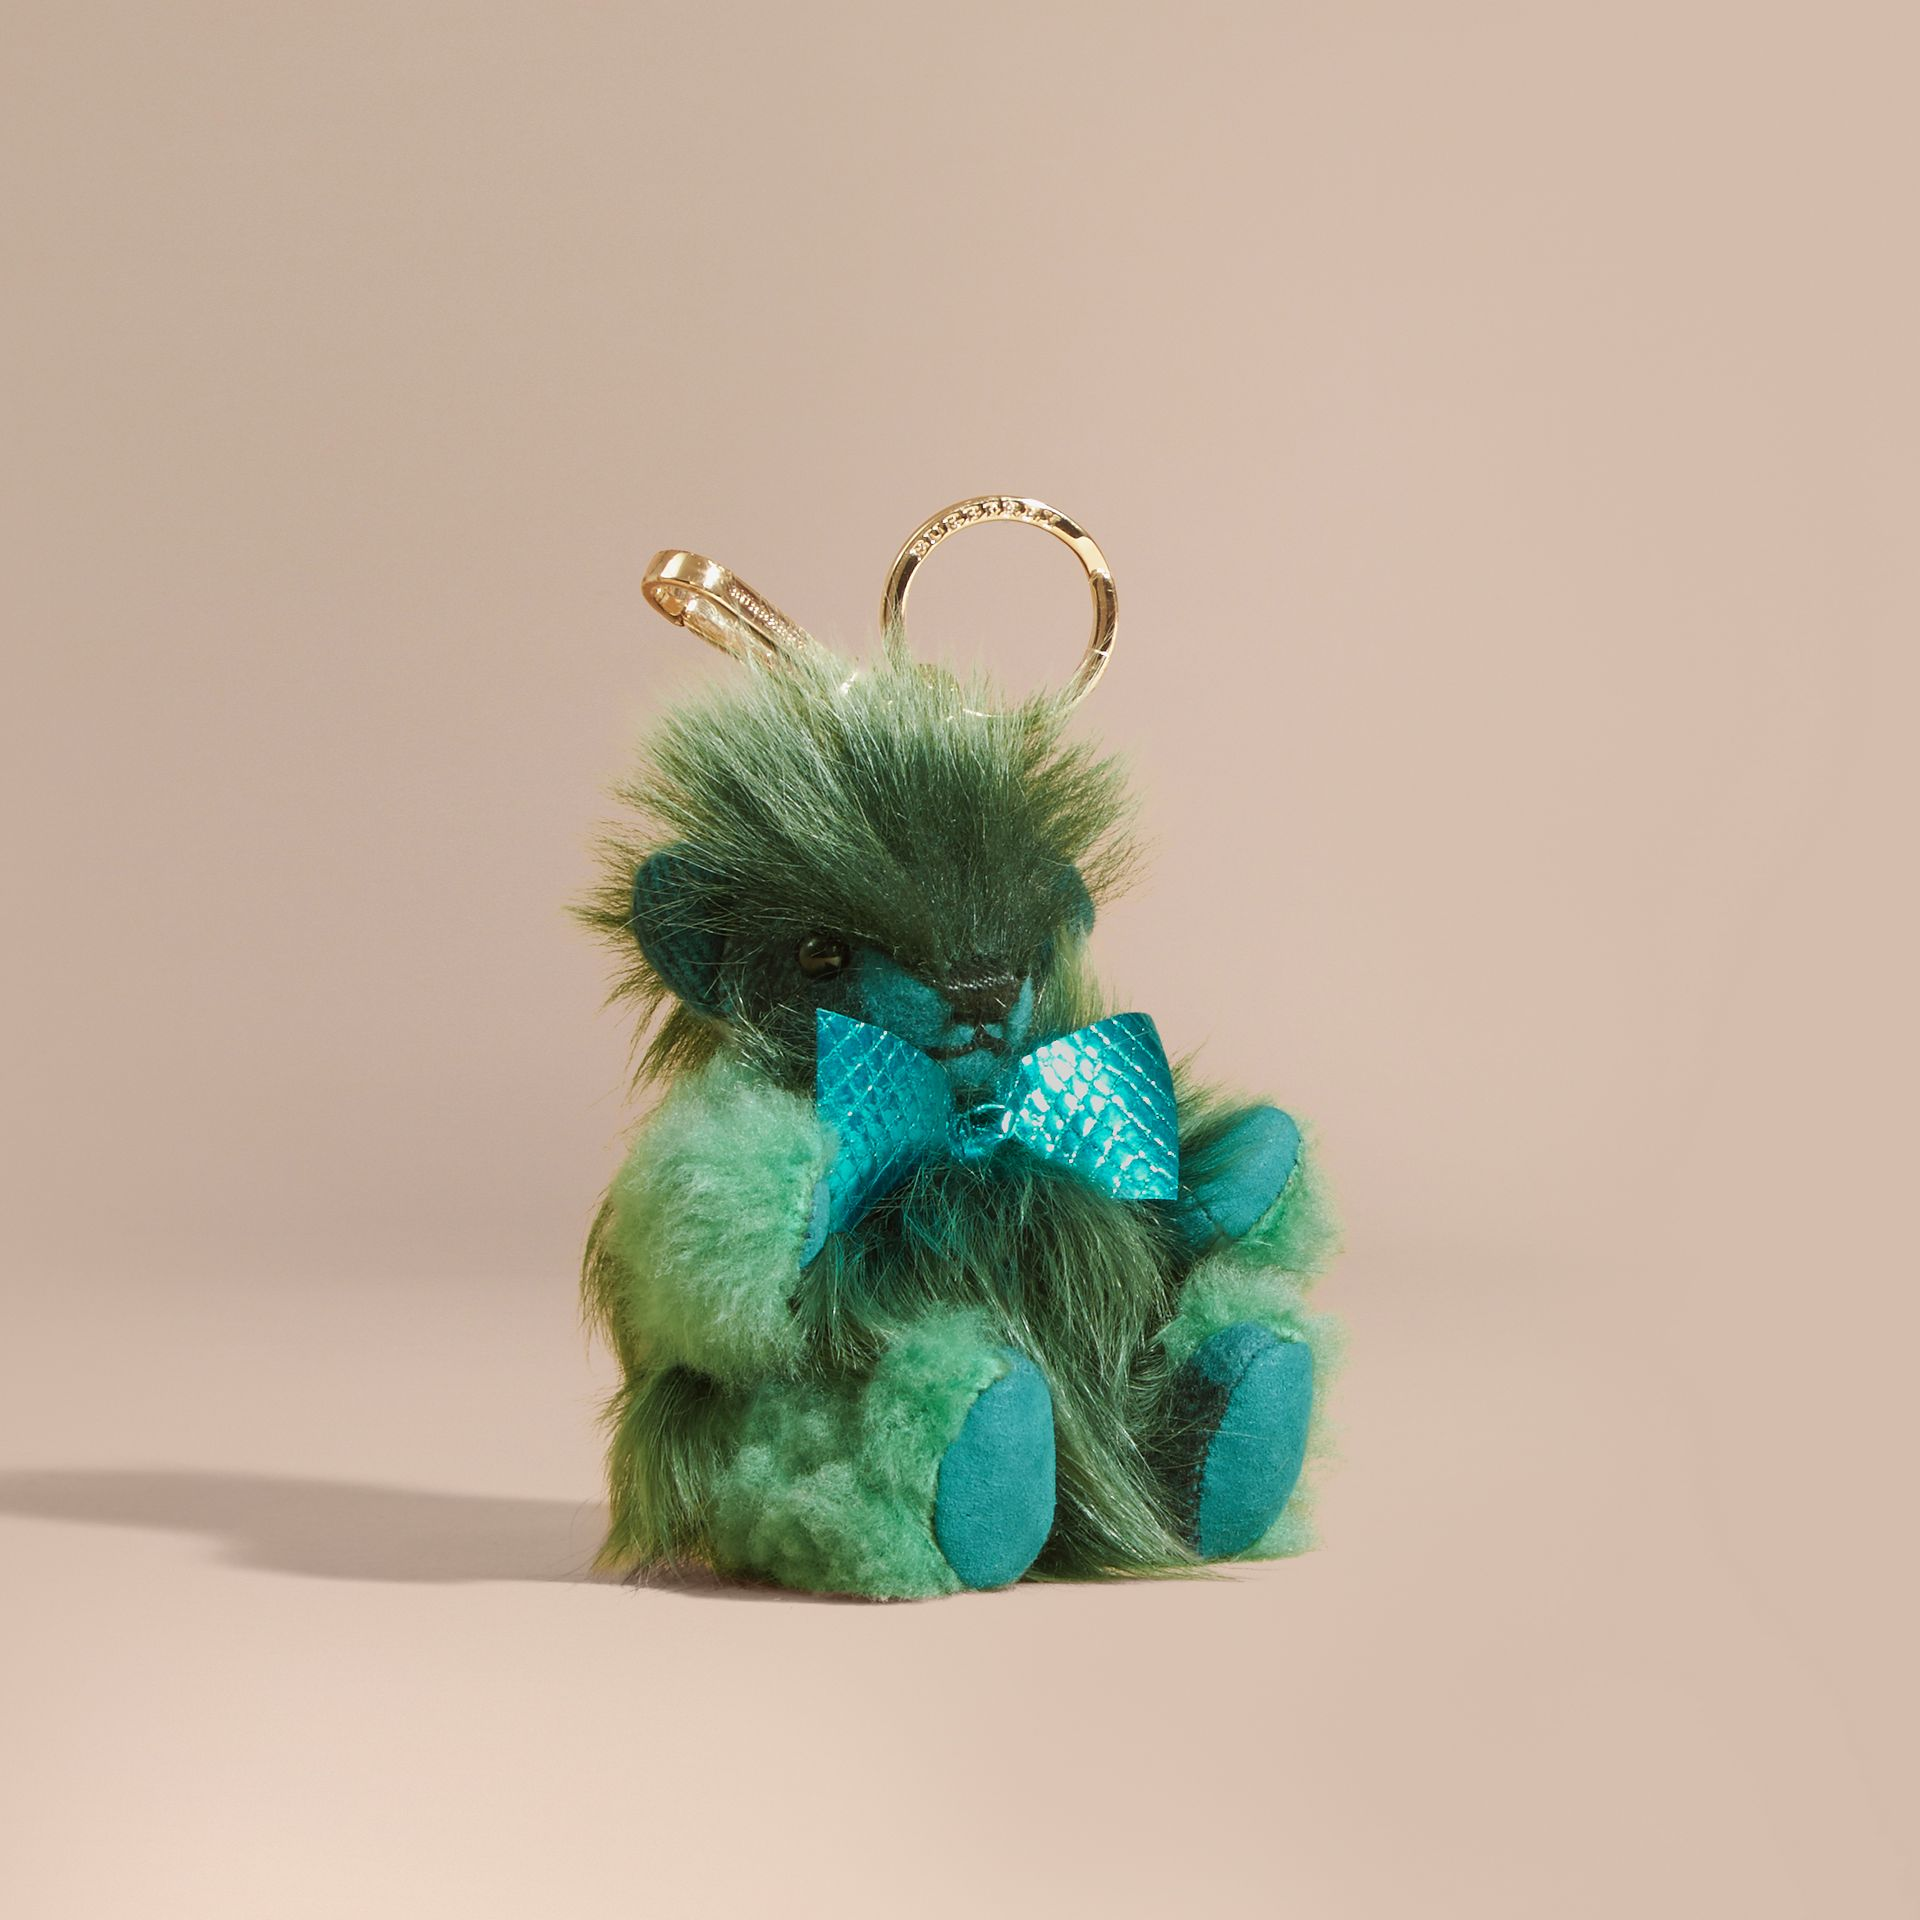 Thomas Bear Pom-Pom Charm in Check Cashmere in Dark Aqua - Women | Burberry - gallery image 1